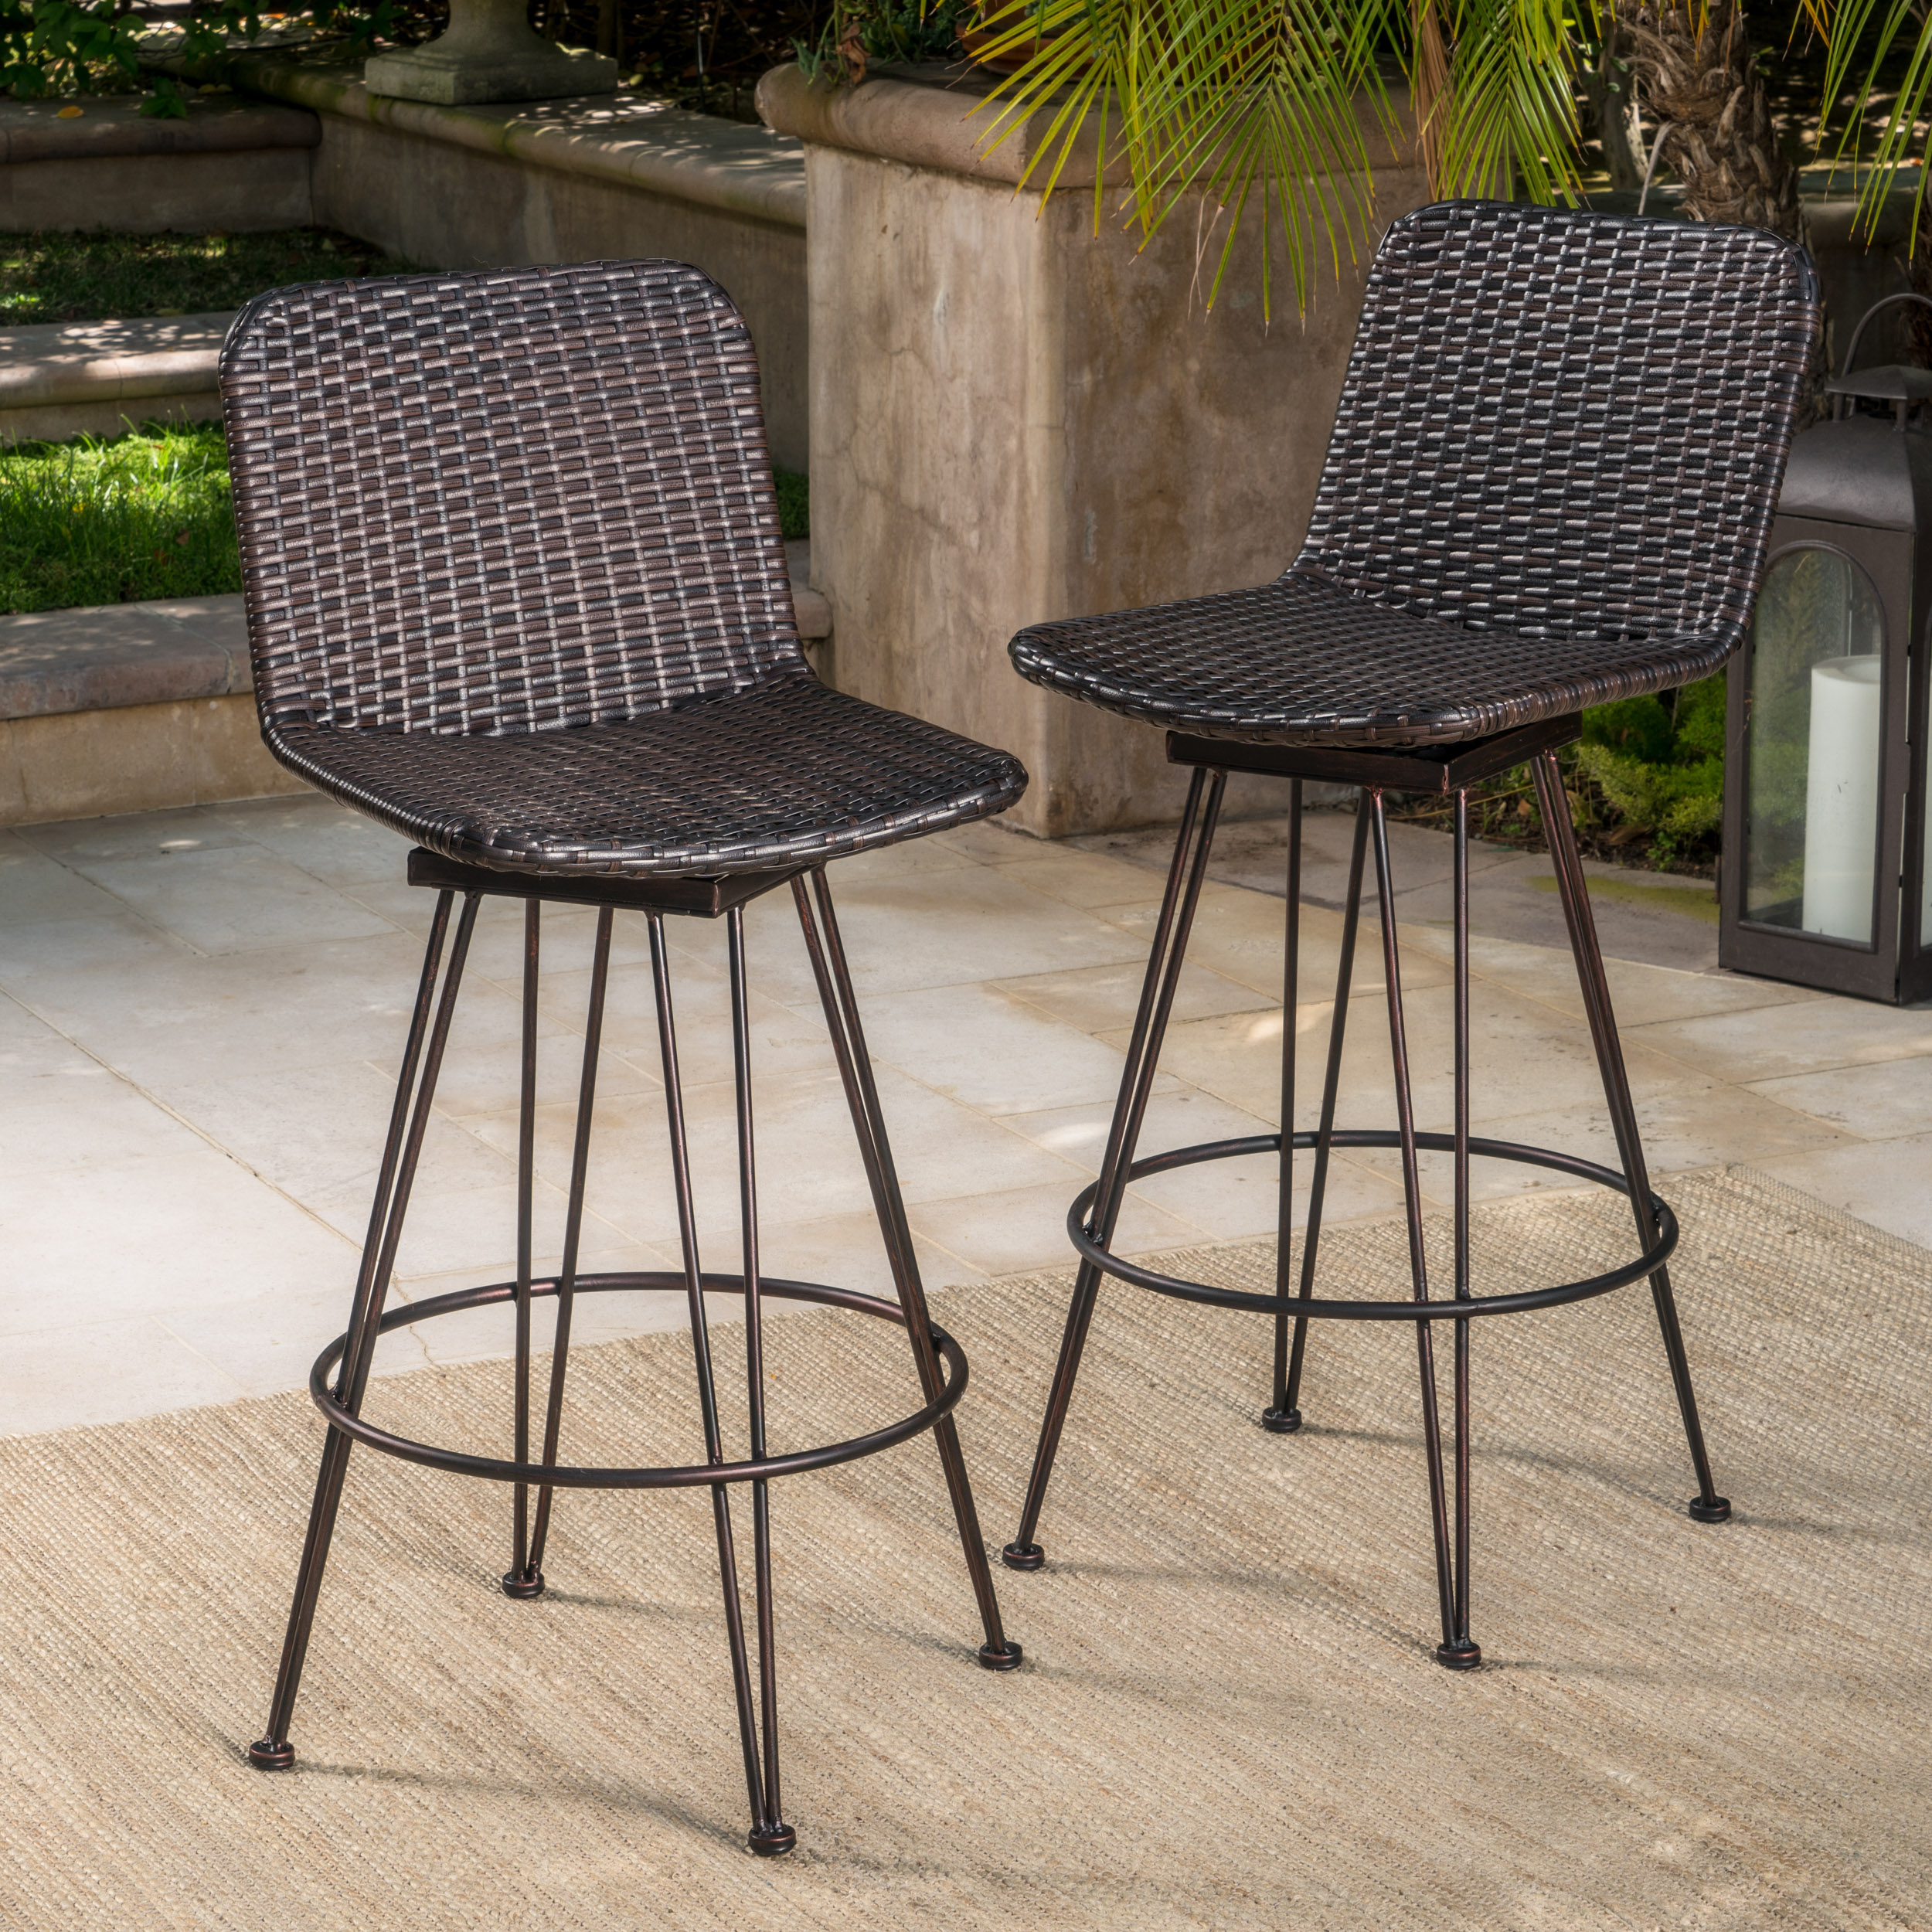 Topanga Outdoor Wicker Barstools with Black Brush Copper Iron Frame, Set of 2, Multibrown